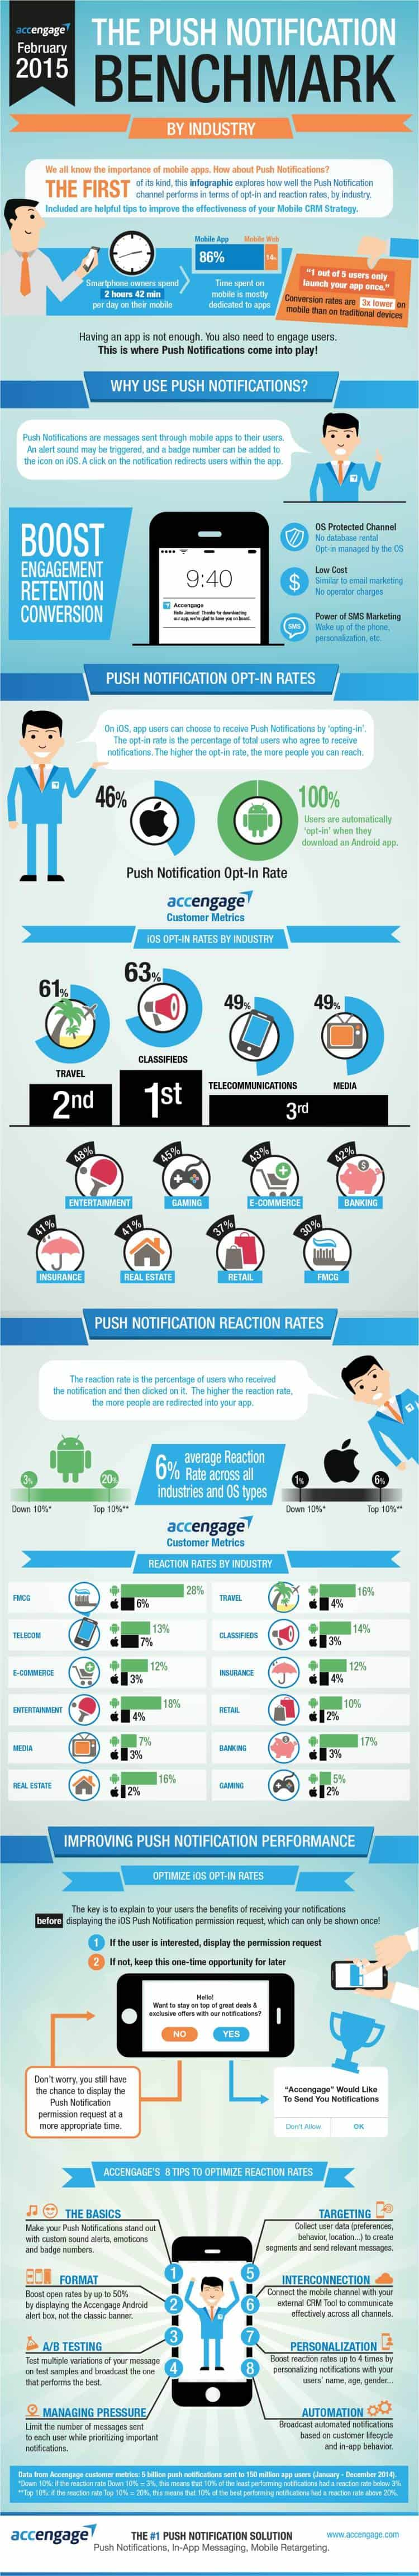 The Push Notification Benchmark Infographic by Accengage